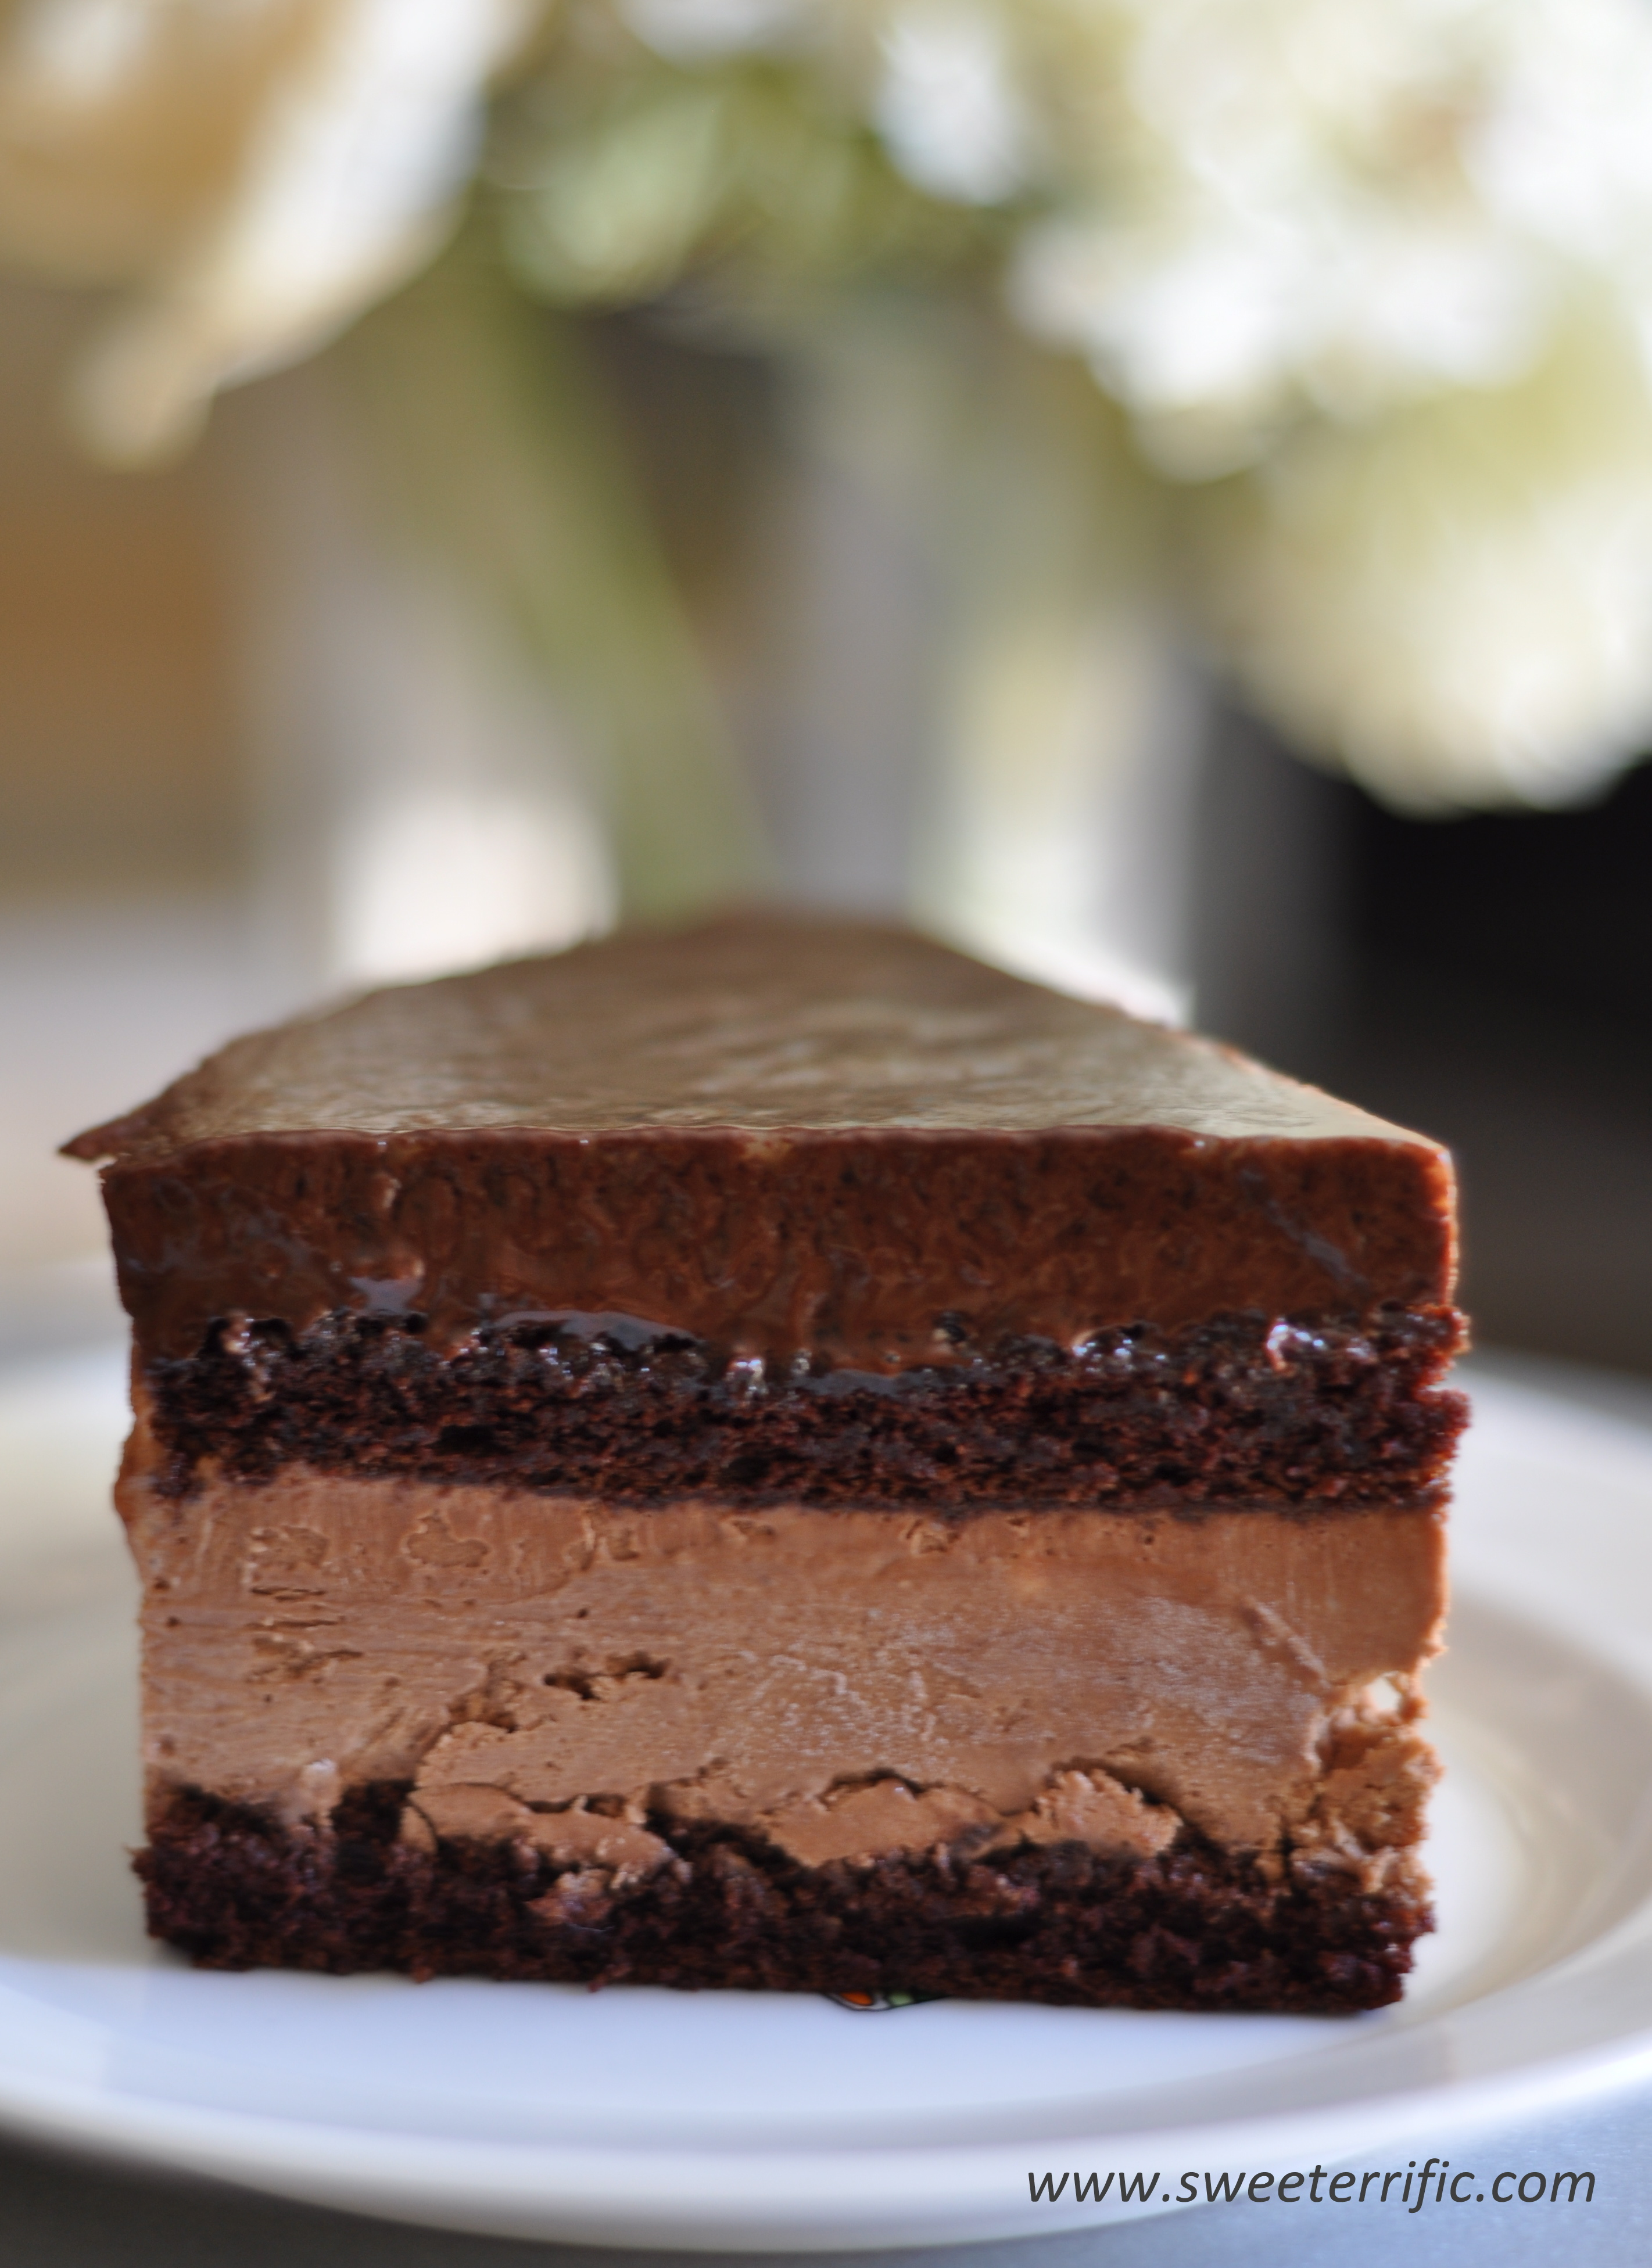 Chocolate Mousse Cake | Sweeterrific